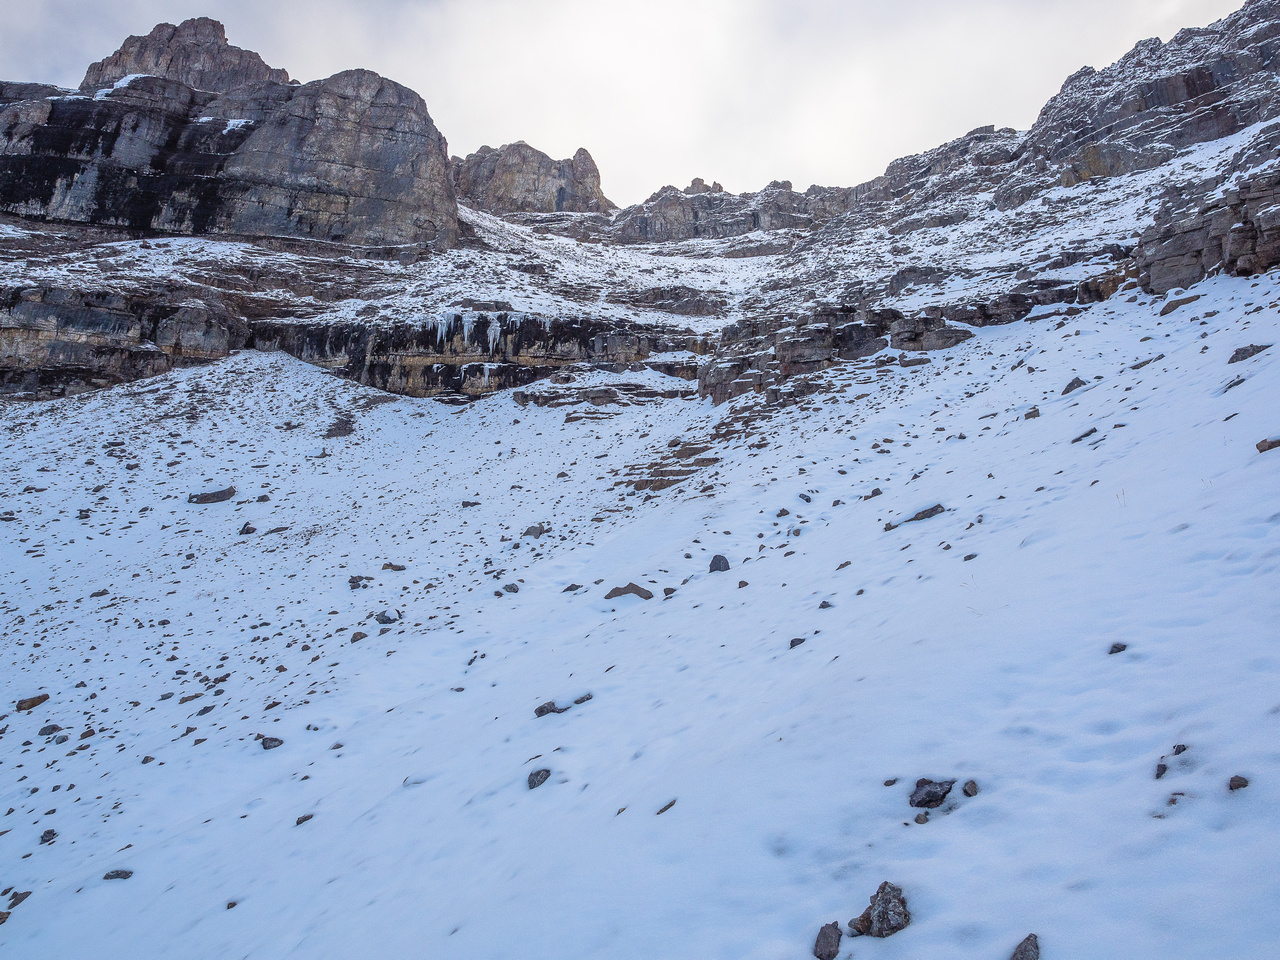 Initially I thought the lower cliffs might be problematic with the snow / ice cover, but I found an easy way through them.